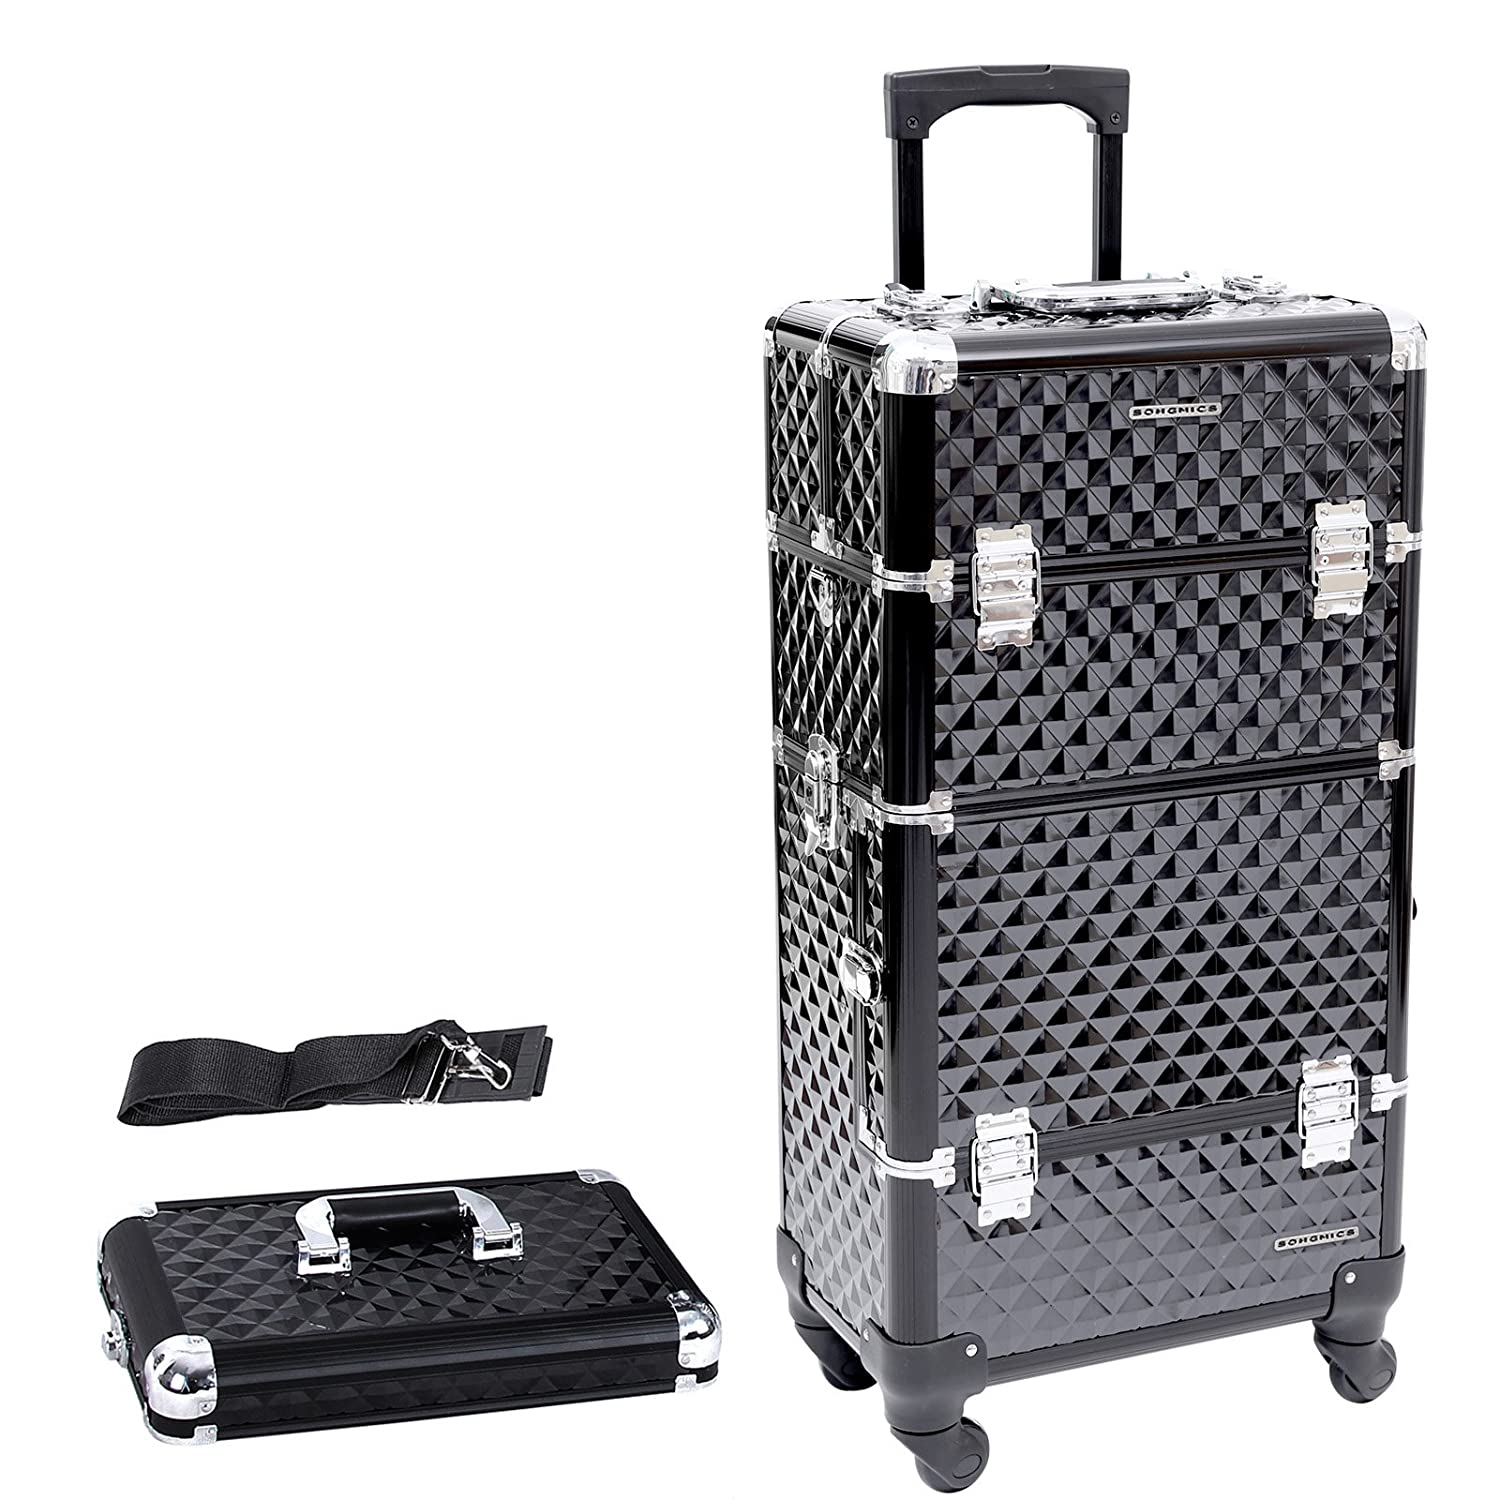 Songmics® JHZ04B Nail Art Make-Up Beauty Case/Trolley / Suitcase/Box for Nail Polishes, Objects and Jewellery